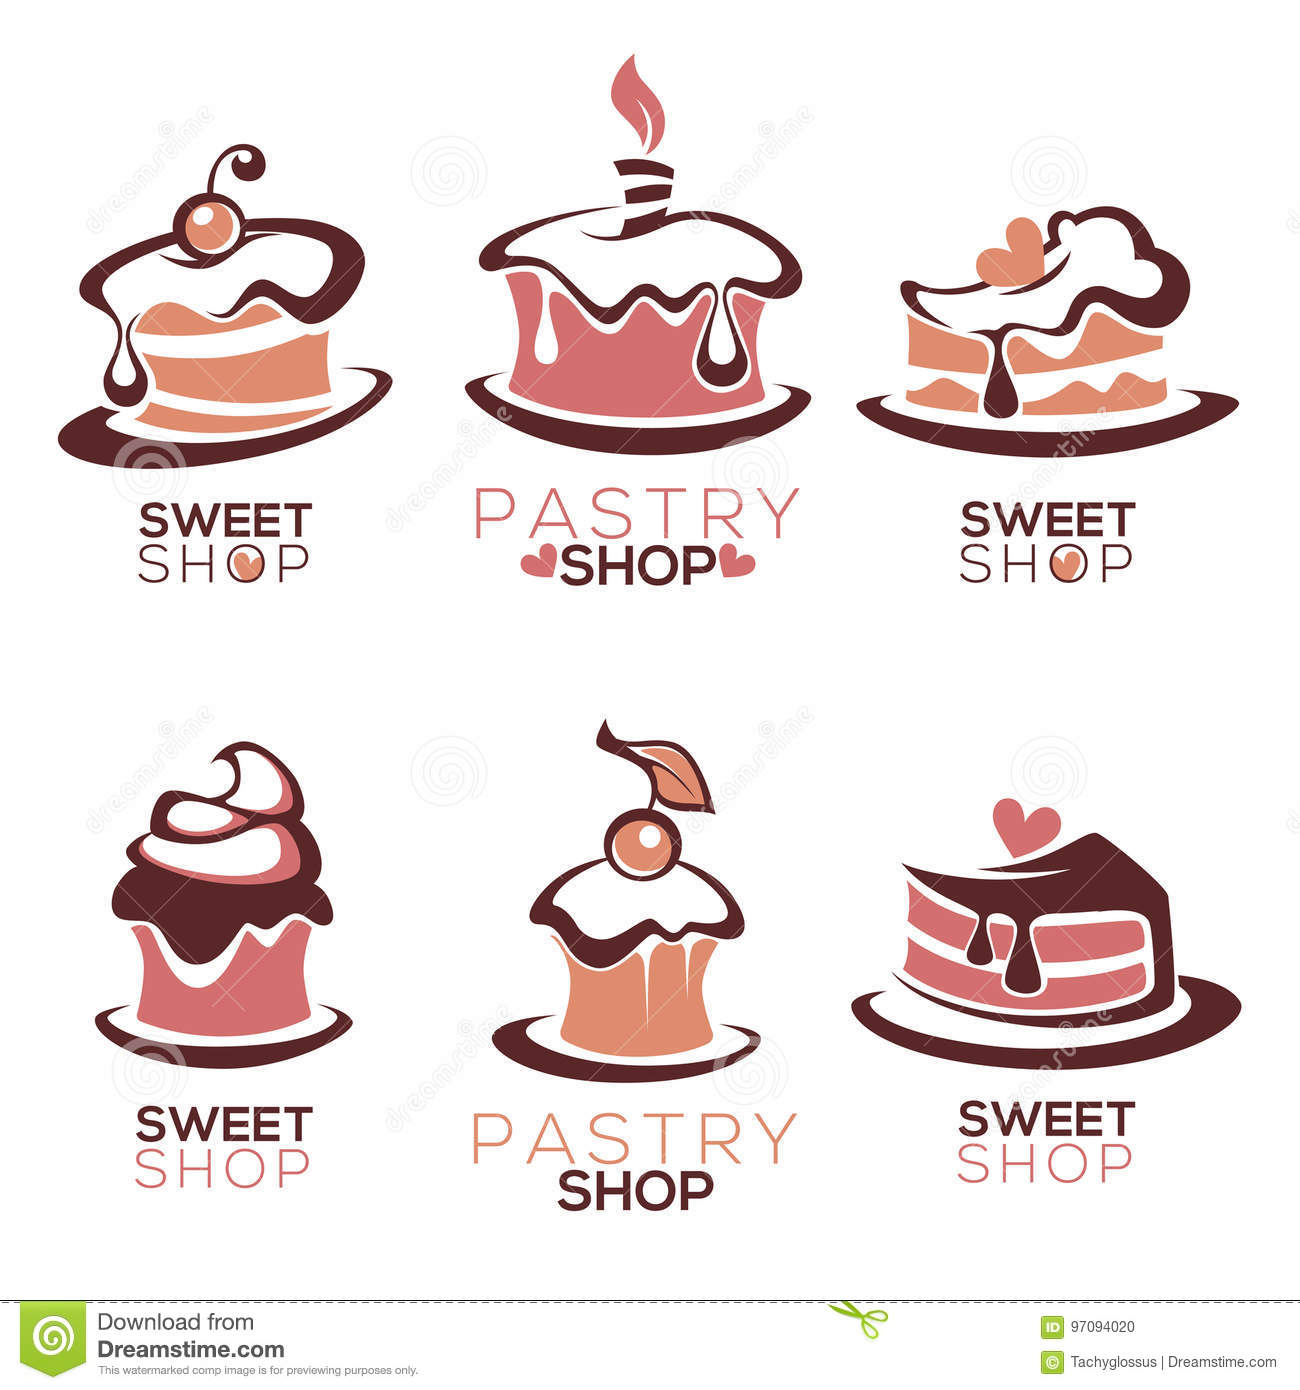 Bakery, pastry, confectionery, cake, dessert, sweets shop,